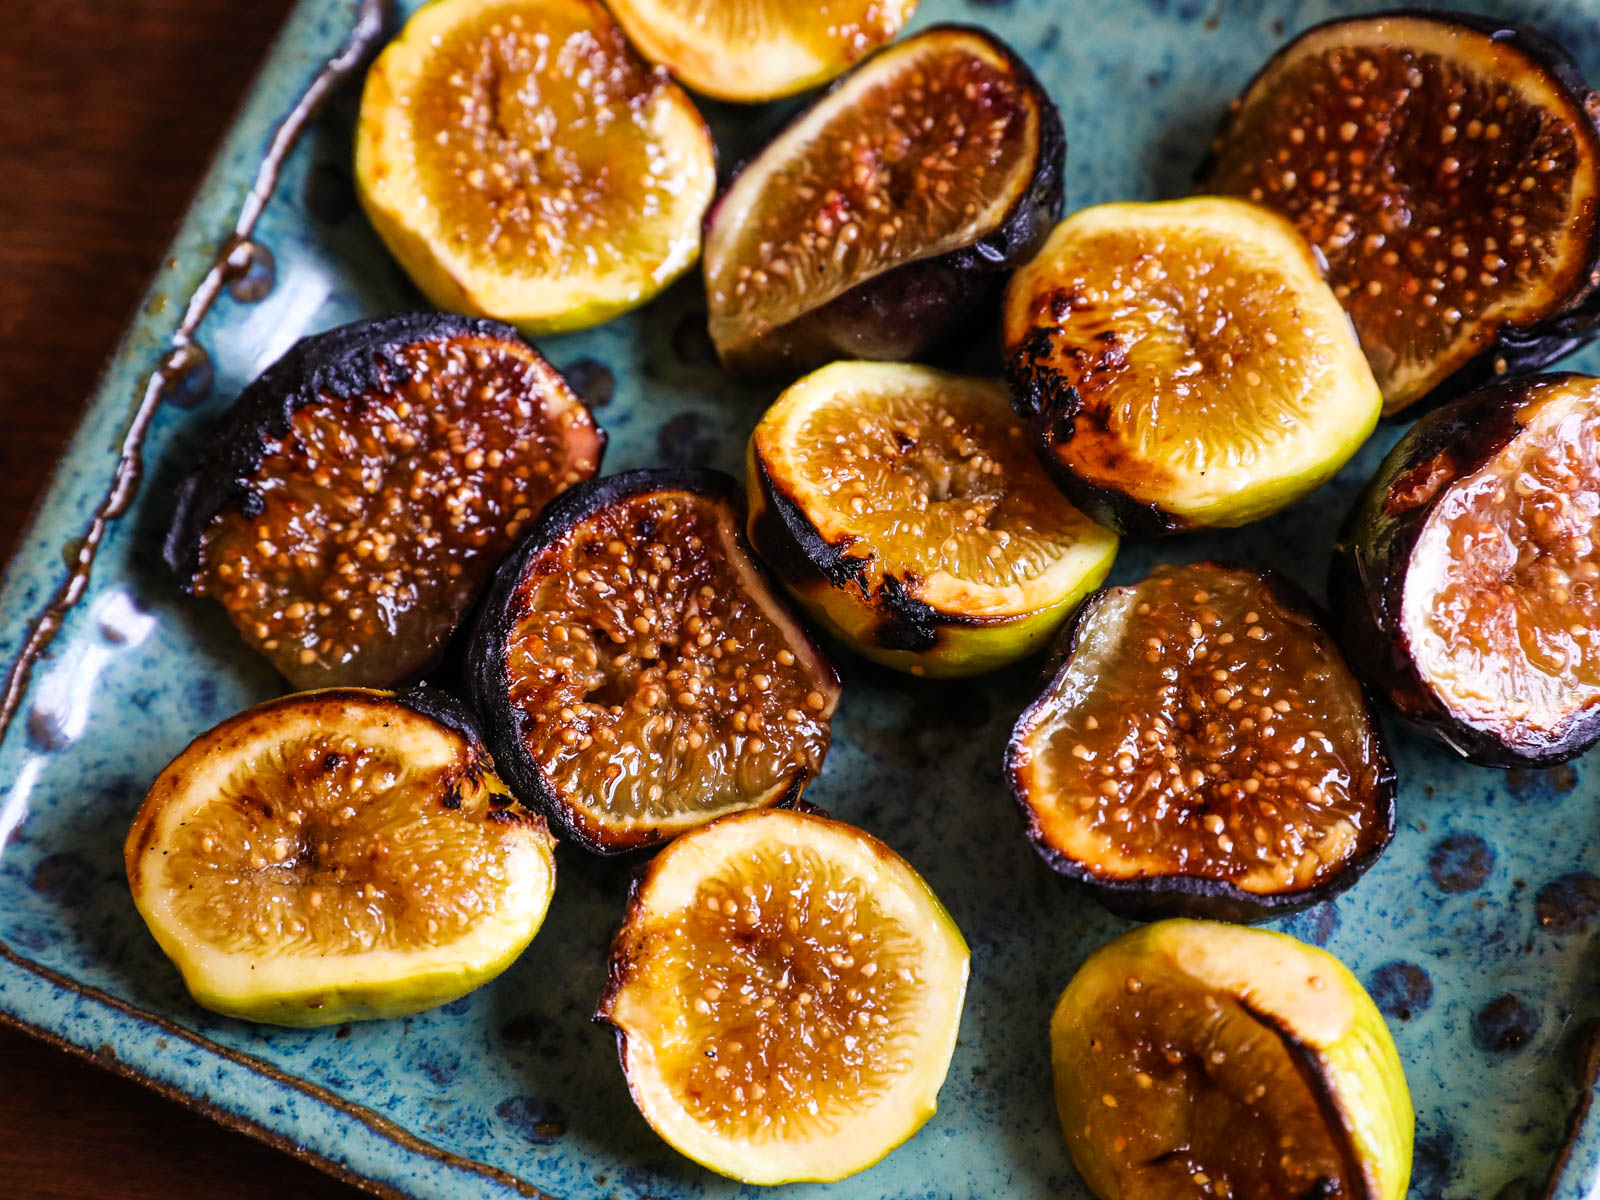 Broiled Figs Dessert